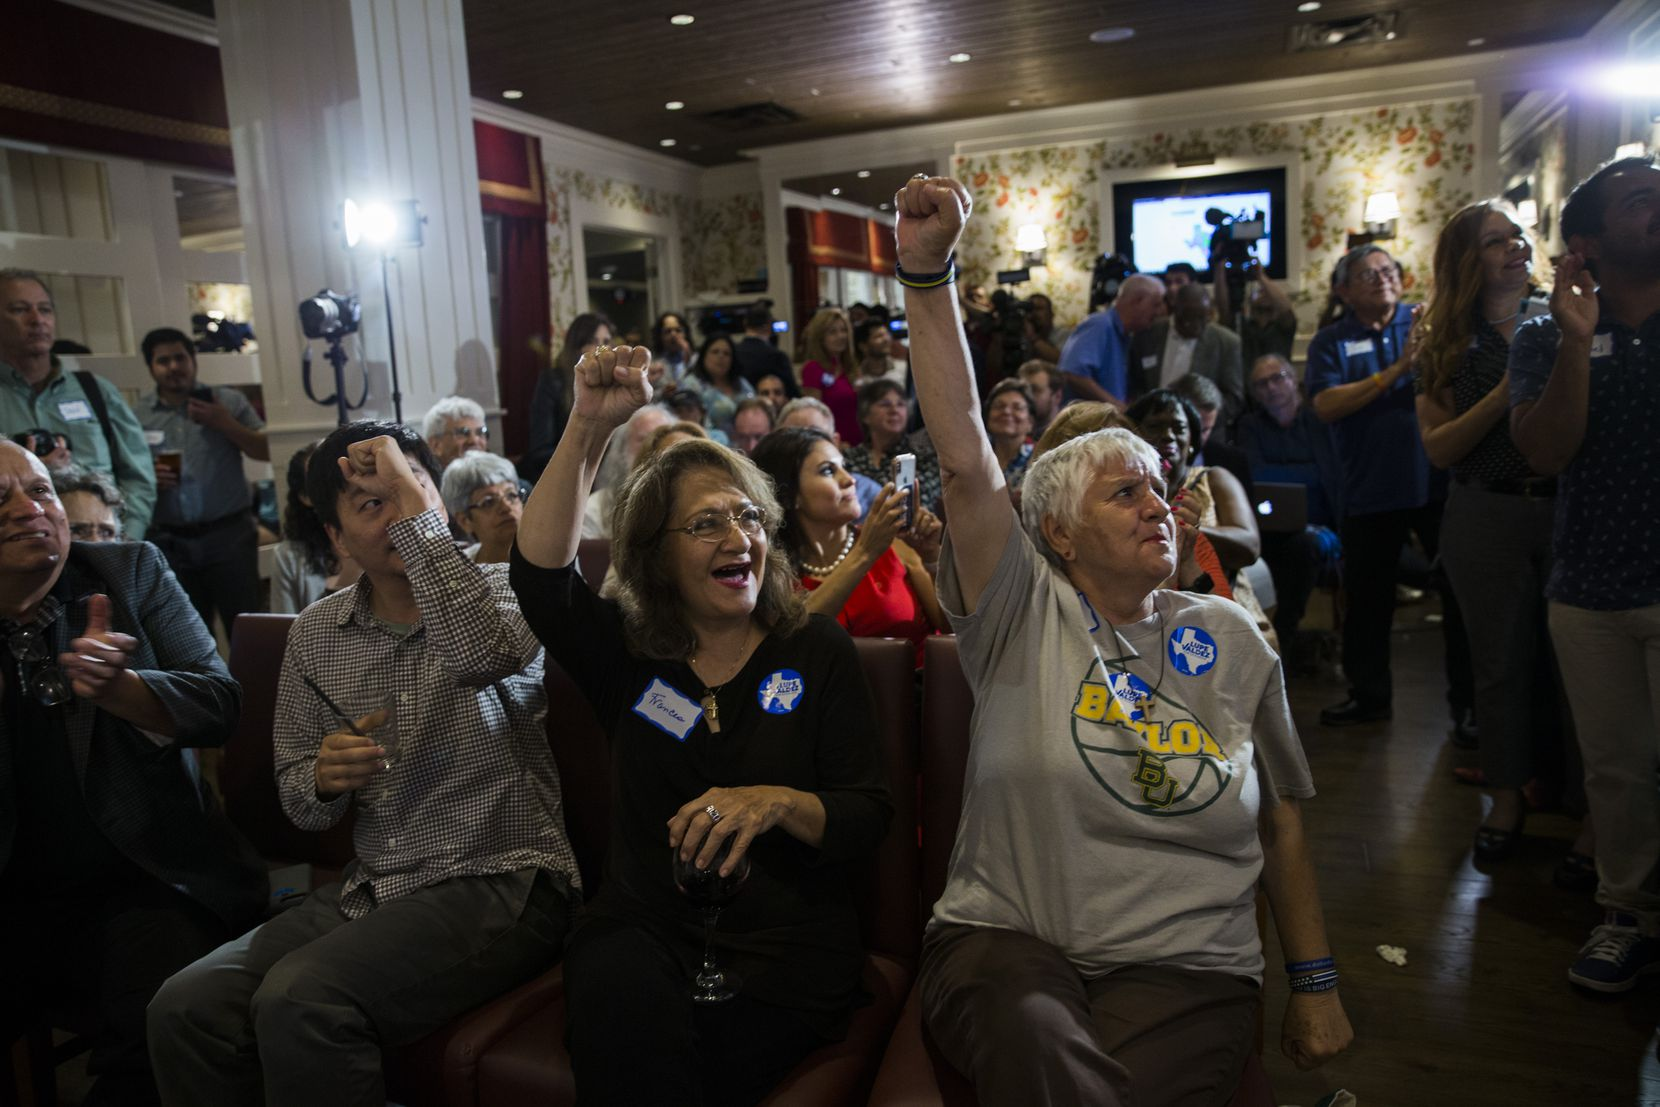 Frances Rizo, center, Sylvia Collins, right, and other supporters of gubernatorial candidate and former Dallas County Sheriff Lupe Valdez react to Valdez's win at Ellen's in Dallas on Tuesday, May 22, 2018.